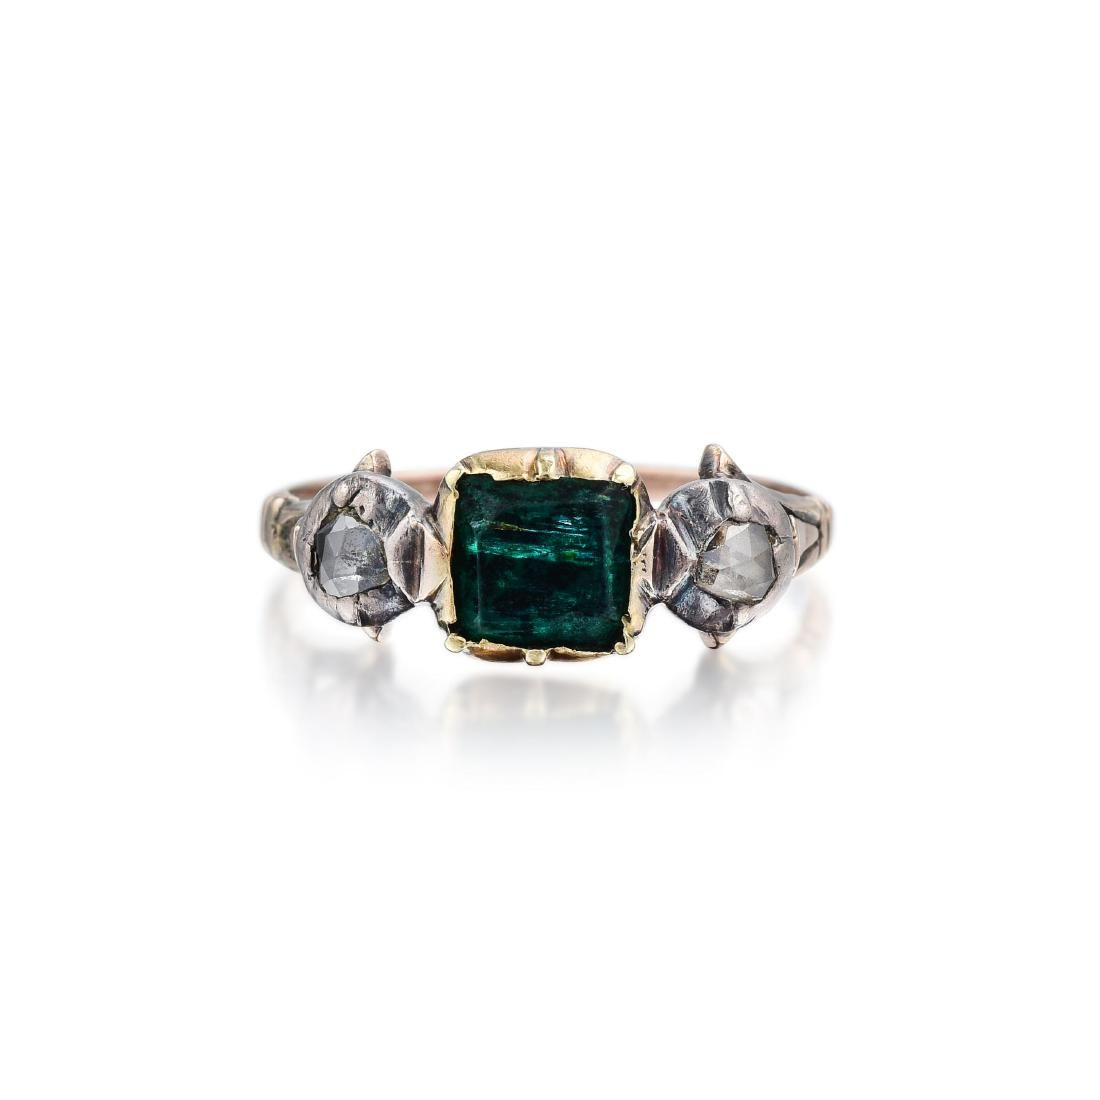 Georgian 14K Gold and Silver Emerald and Diamond Ring